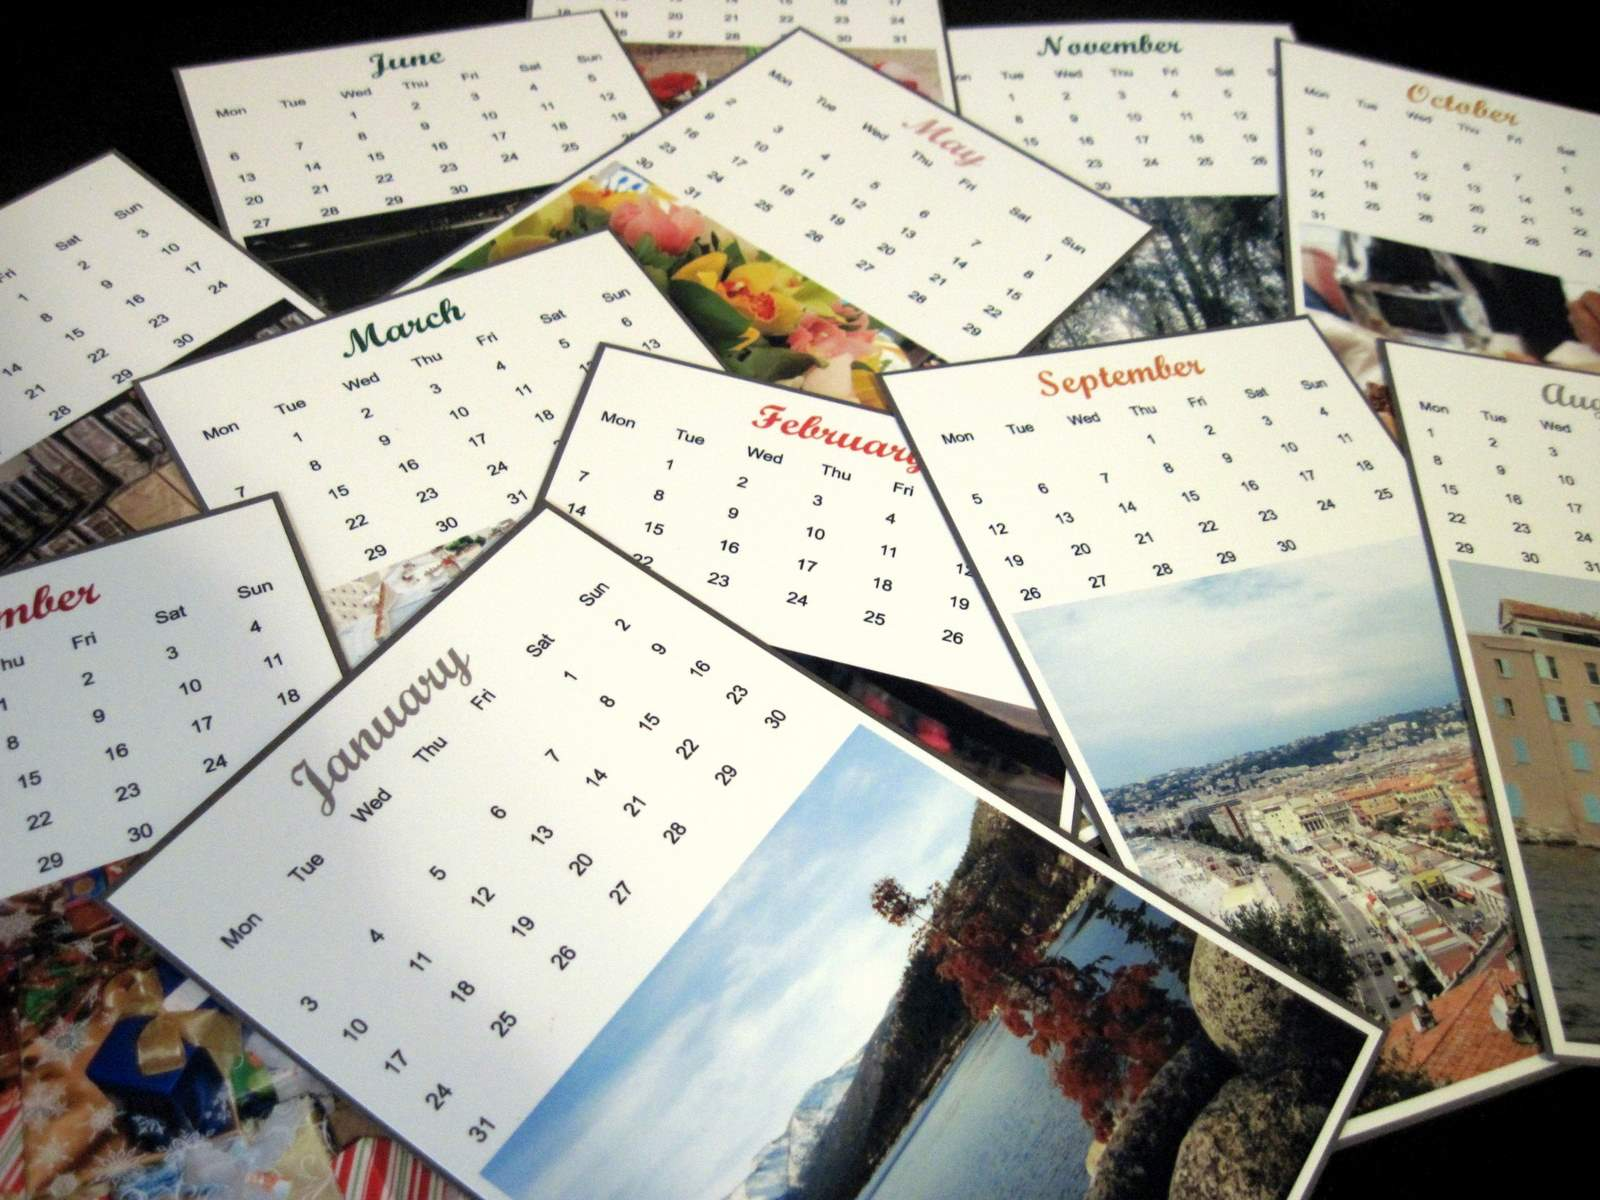 Desk Calendar Tutorial and Giveaway   Almost Never Clever